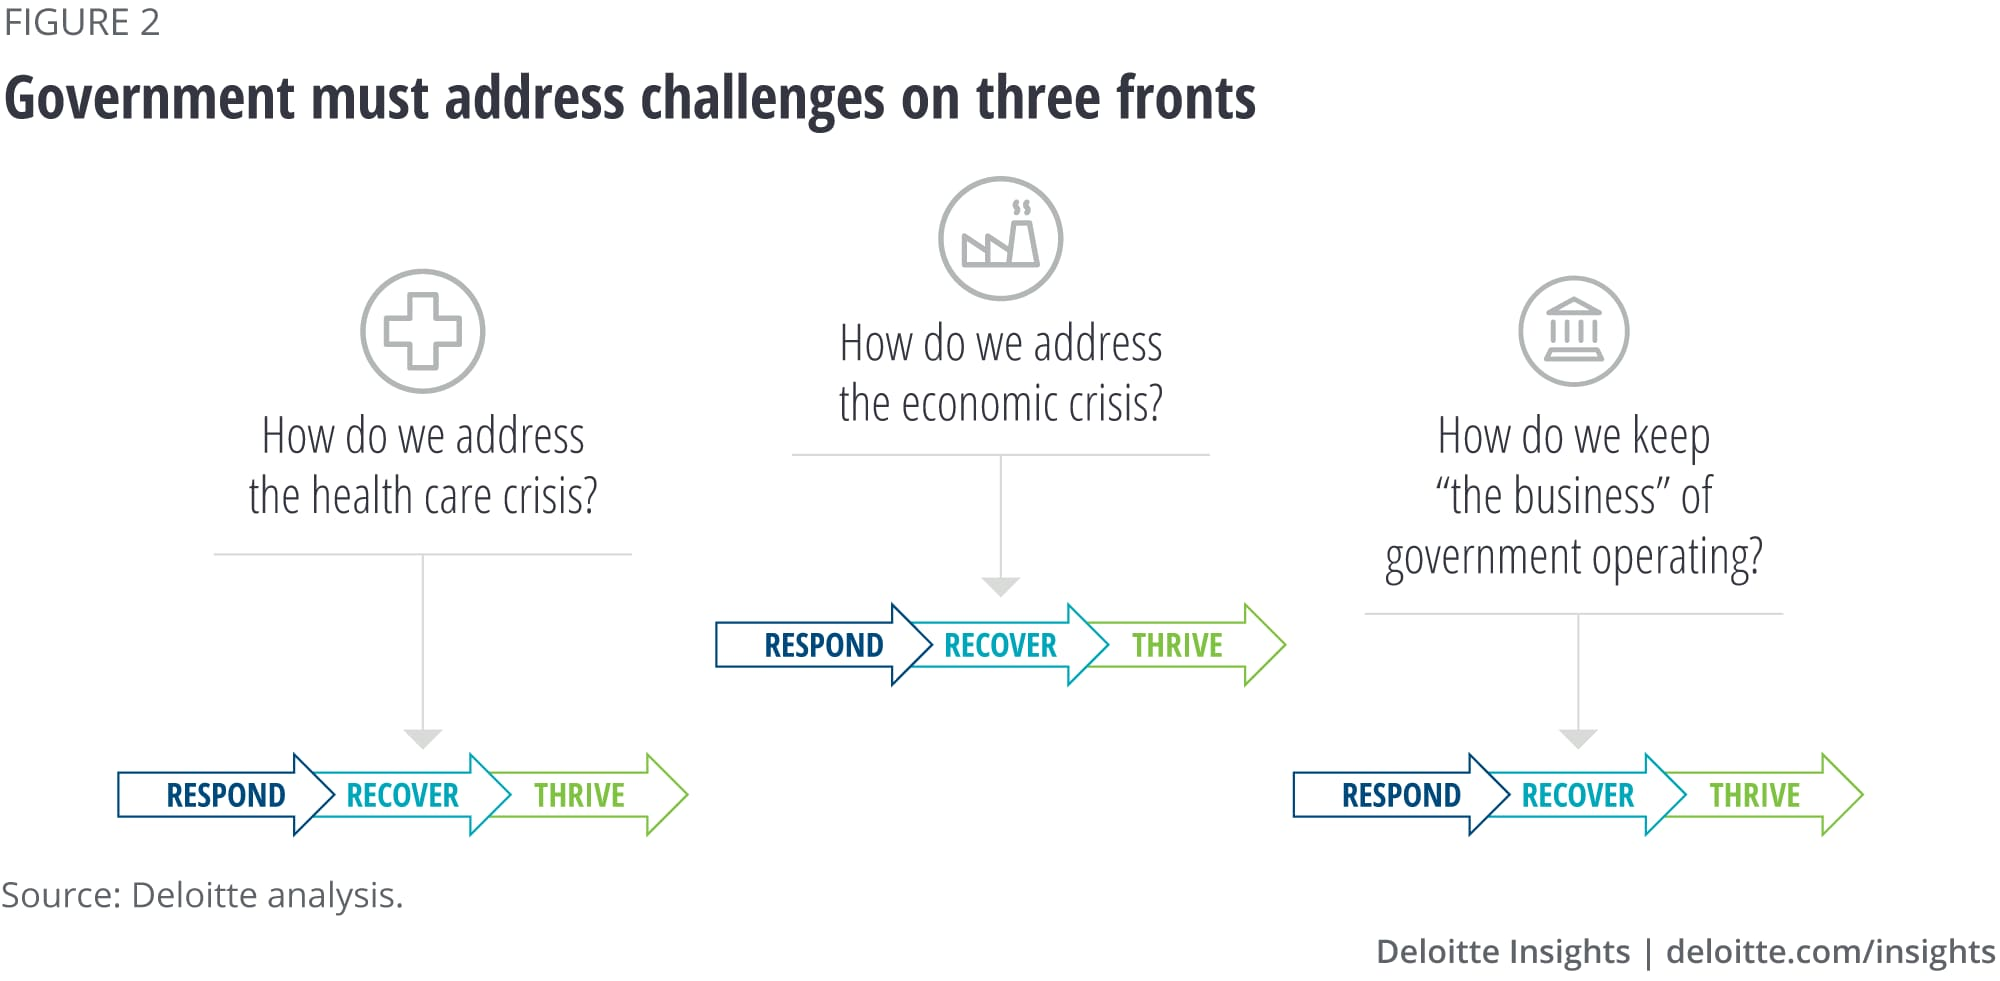 Governments must address challenges on these fronts